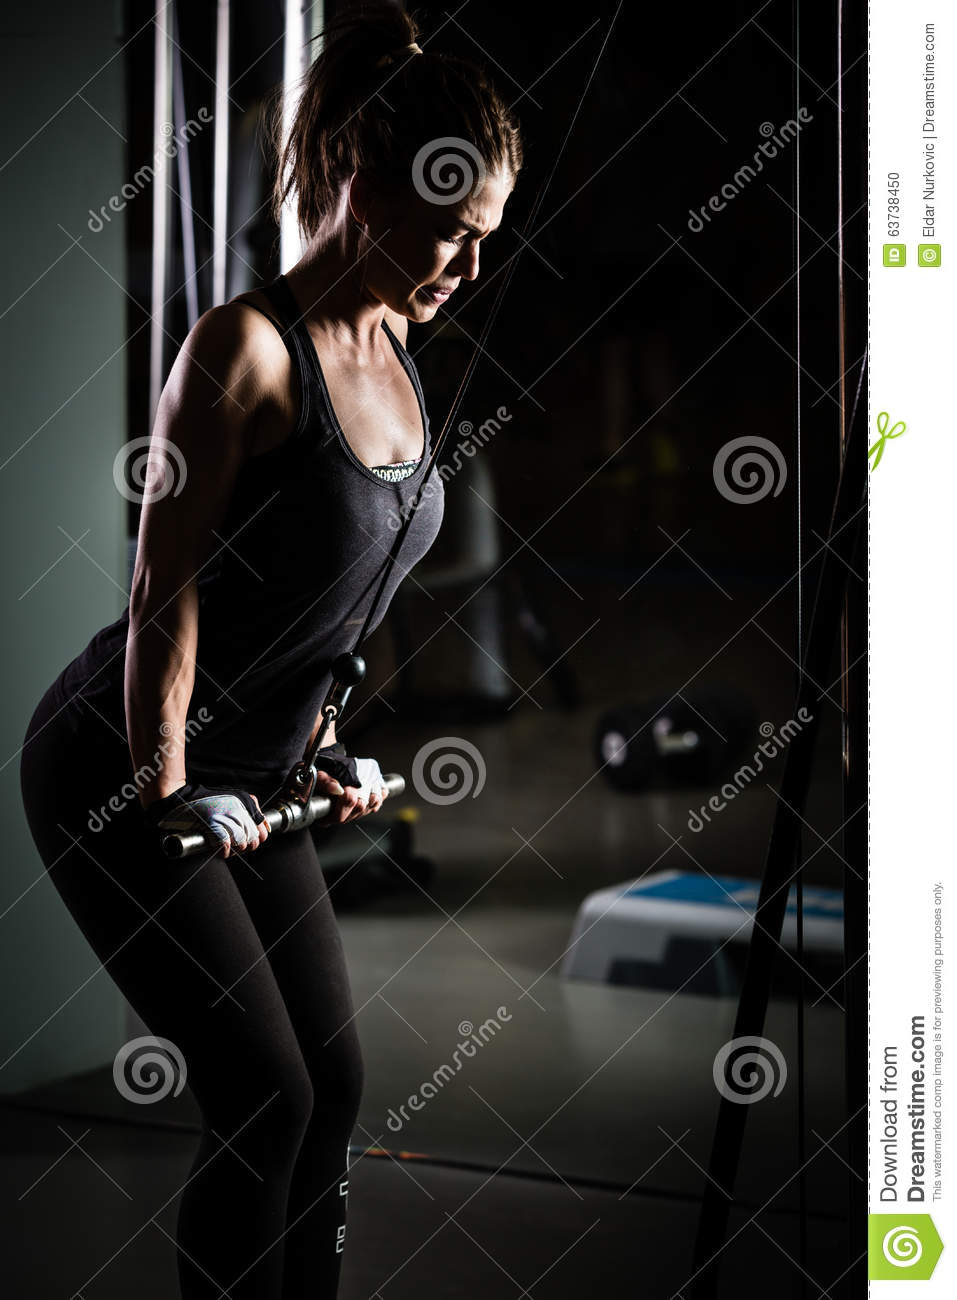 Woman weight training at gym.Exercising on pull down weight machine.Woman doing pull-ups exercising lifting dumbbells